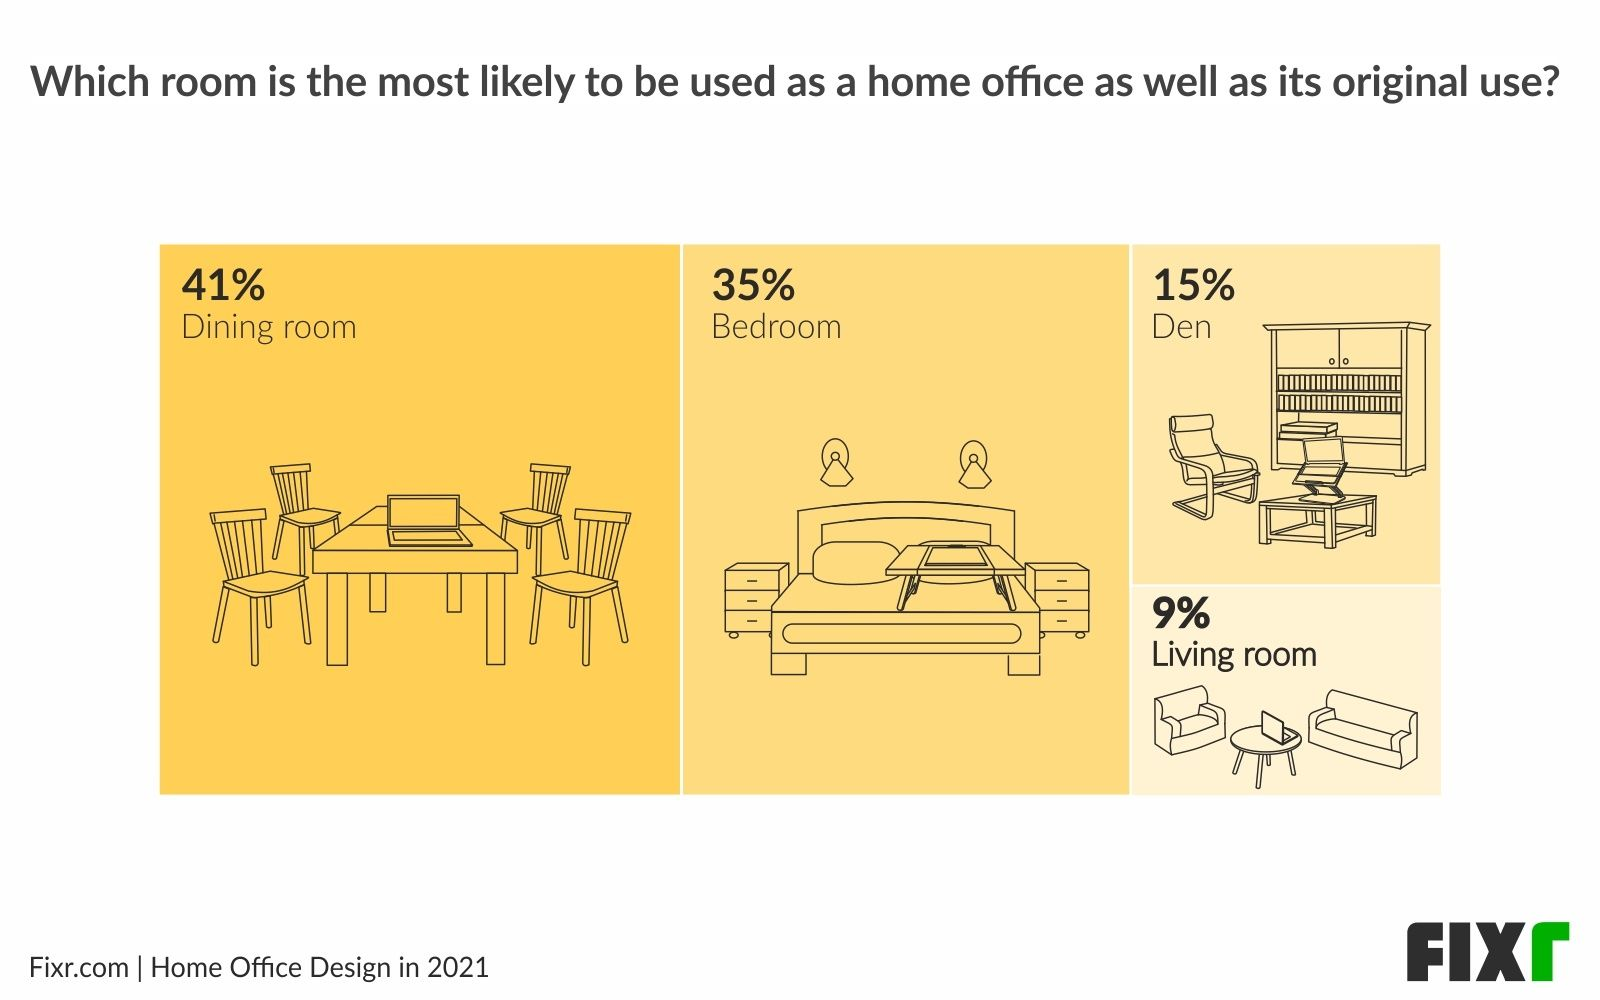 Home Office Design in 2021〡Dining Rooms are The Shared Spaces Most Used for Working